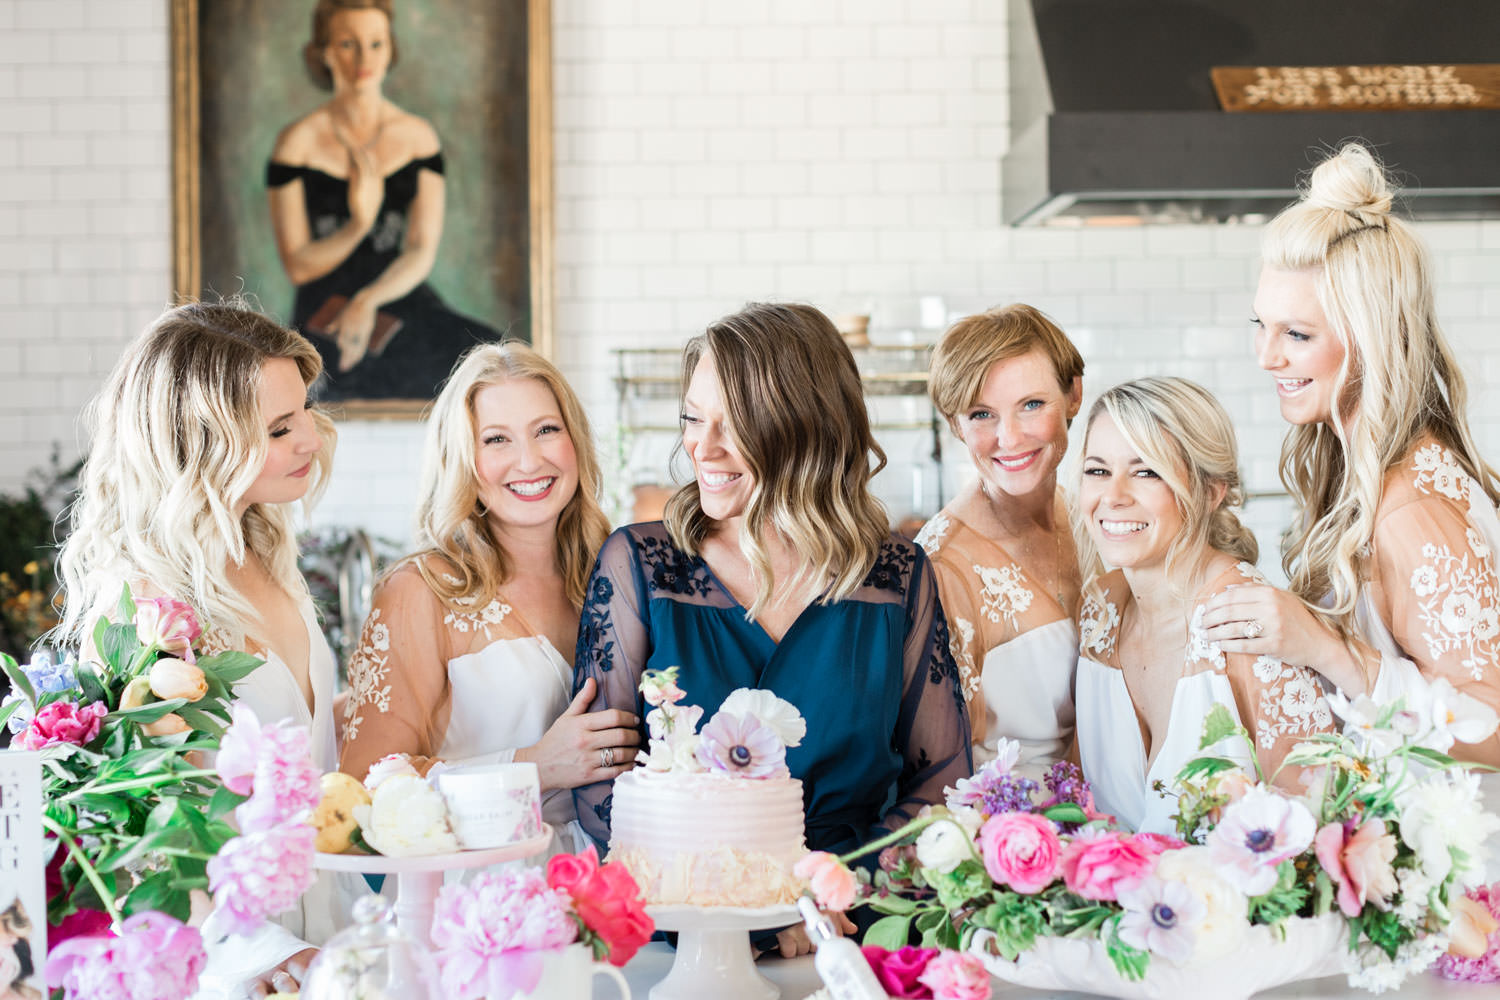 Bridesmaids in Robed with Love bride robe for bridal favorites gift ideas, Cavin Elizabeth Photography